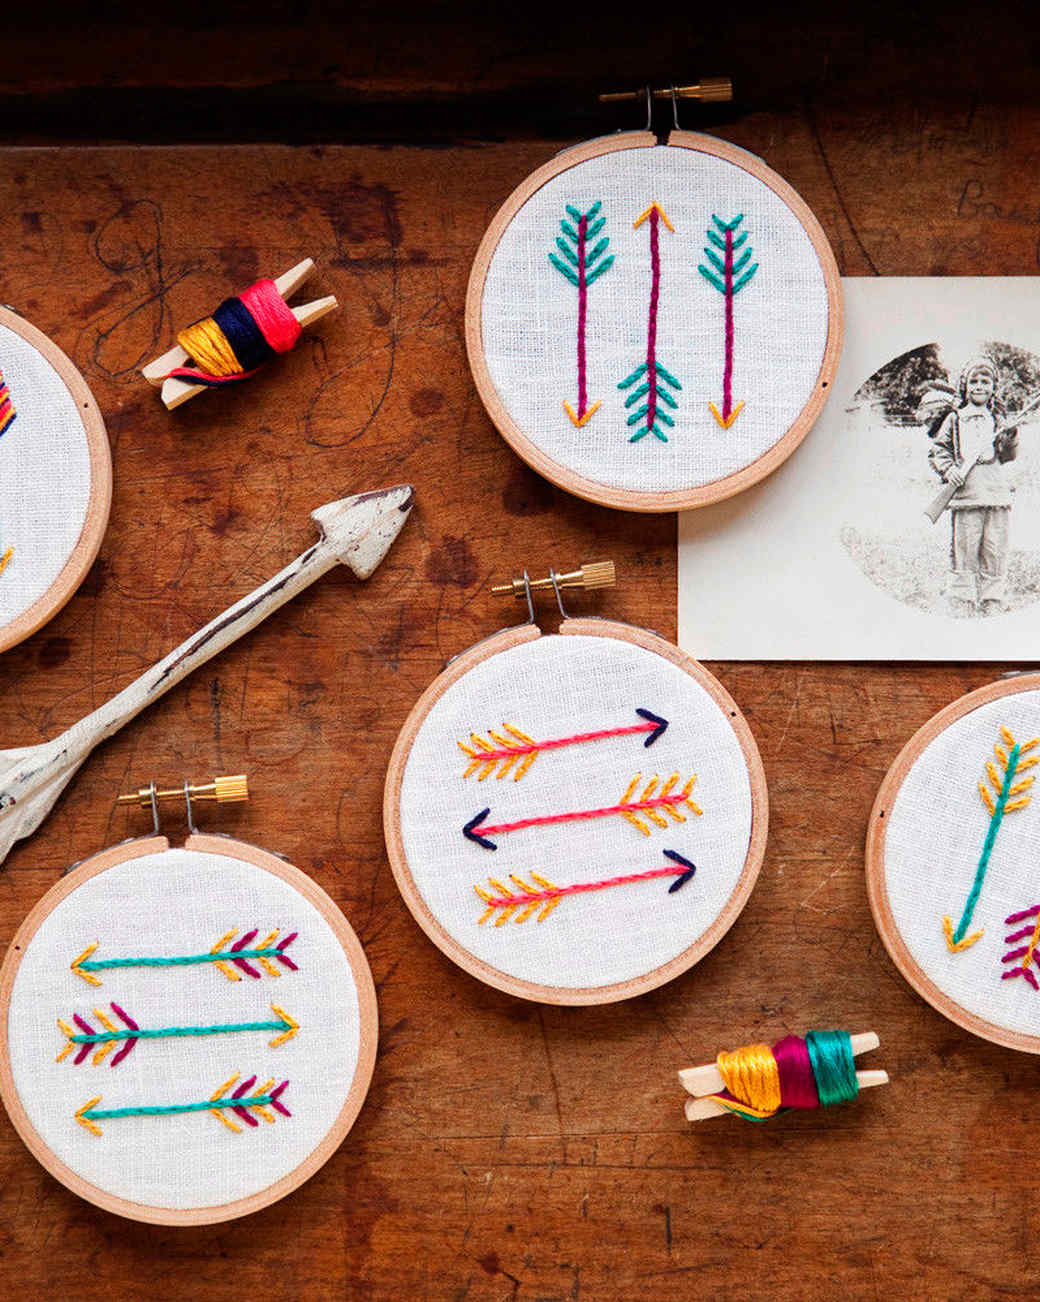 miniaturerhino-mini-arrow-embroidery-kit-0915.jpg